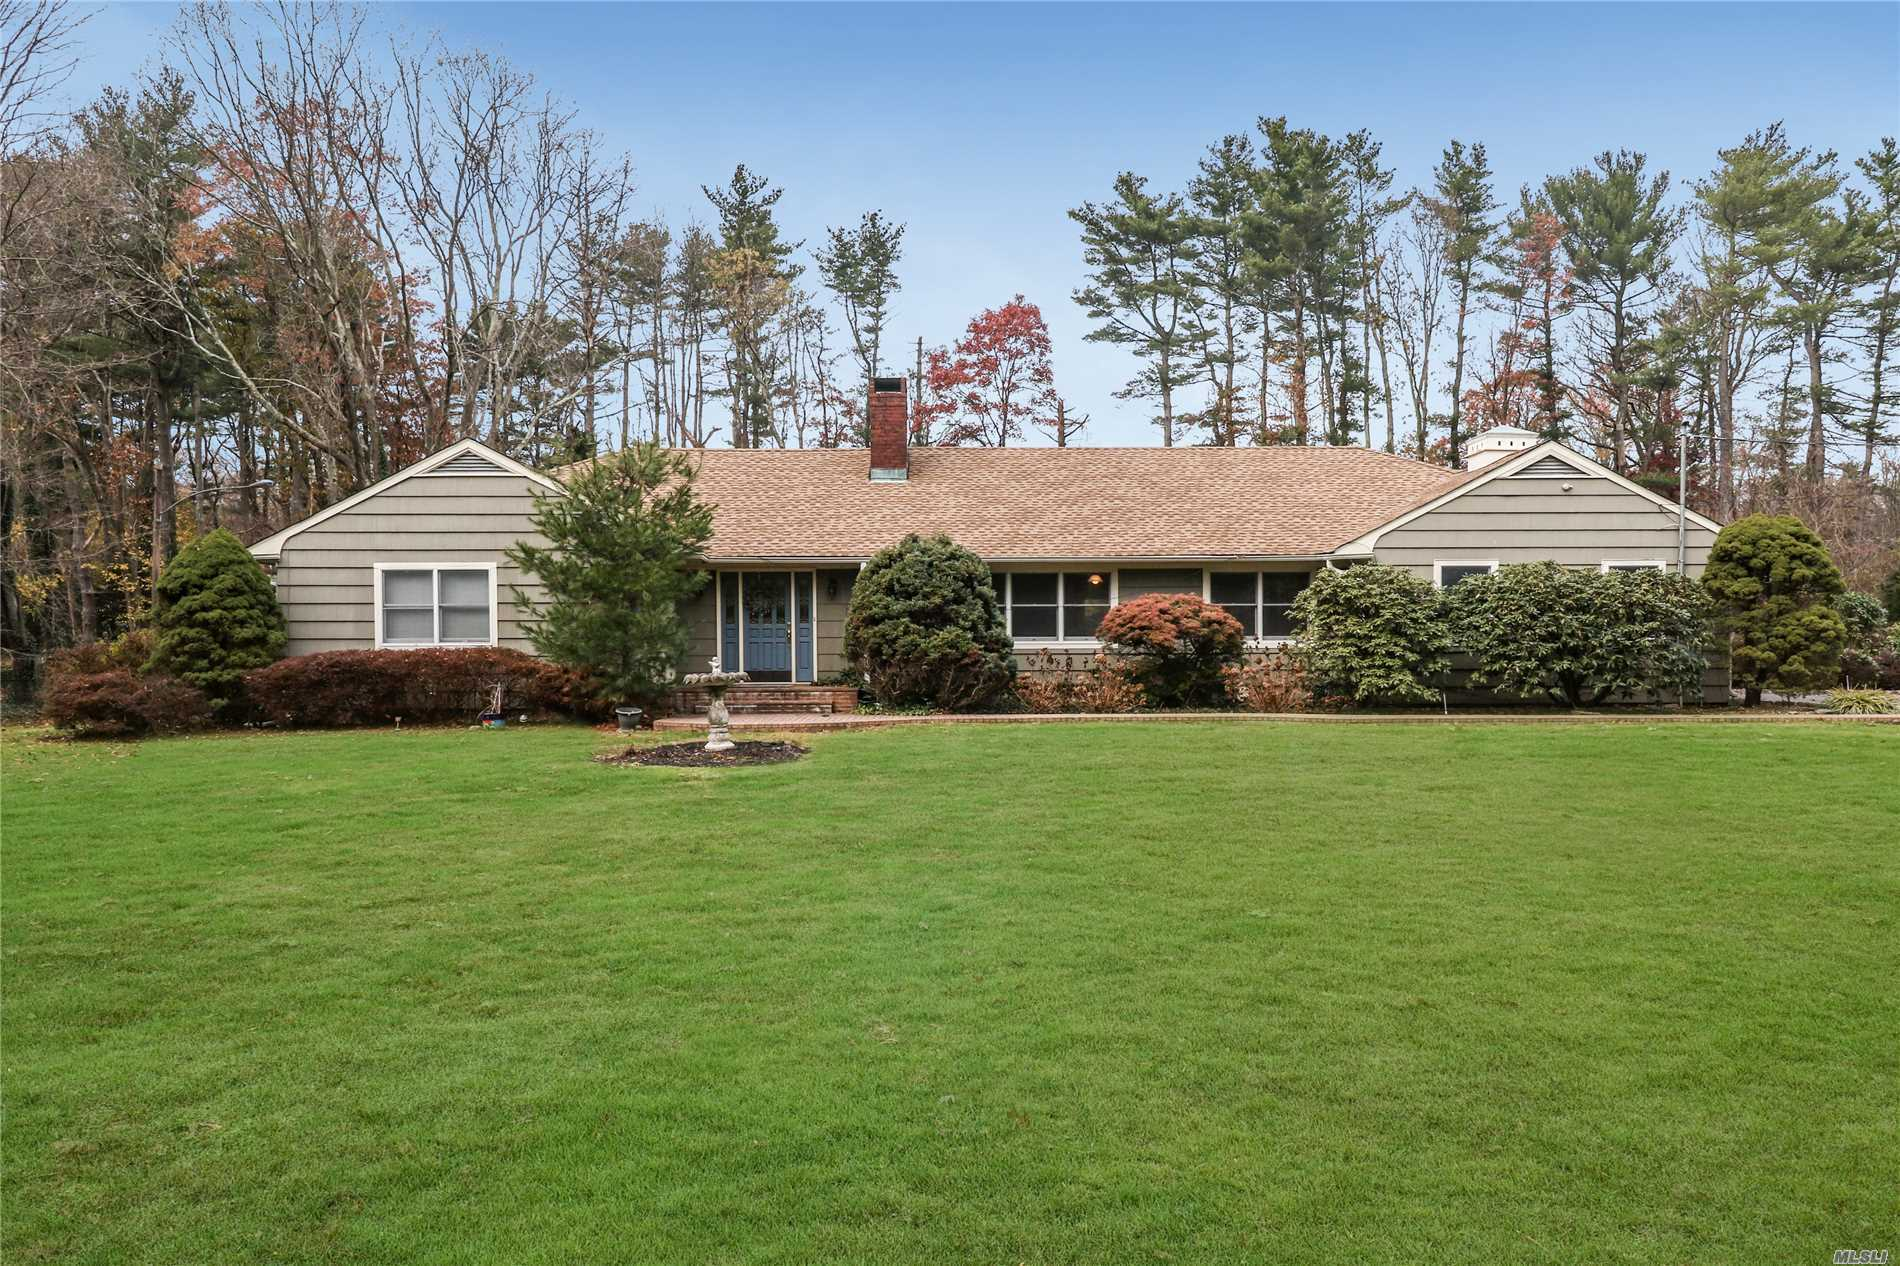 Welcome To Brookville! Beautiful Expanded Ranch On 2 Flat Meticulously Landscaped Acres. This Home Was Completely Renovated And Offers New Kitchen, Baths, All New Windows And Doors, Moldings, Hardwood Flooring. Central Air, Full House Generator. Full Finished Basement. In-Ground Heated Salt Water Pool. Newly Paved Driveway With 2-Car Garage. Low Taxes. Nationally Ranked #1 Jericho School District.